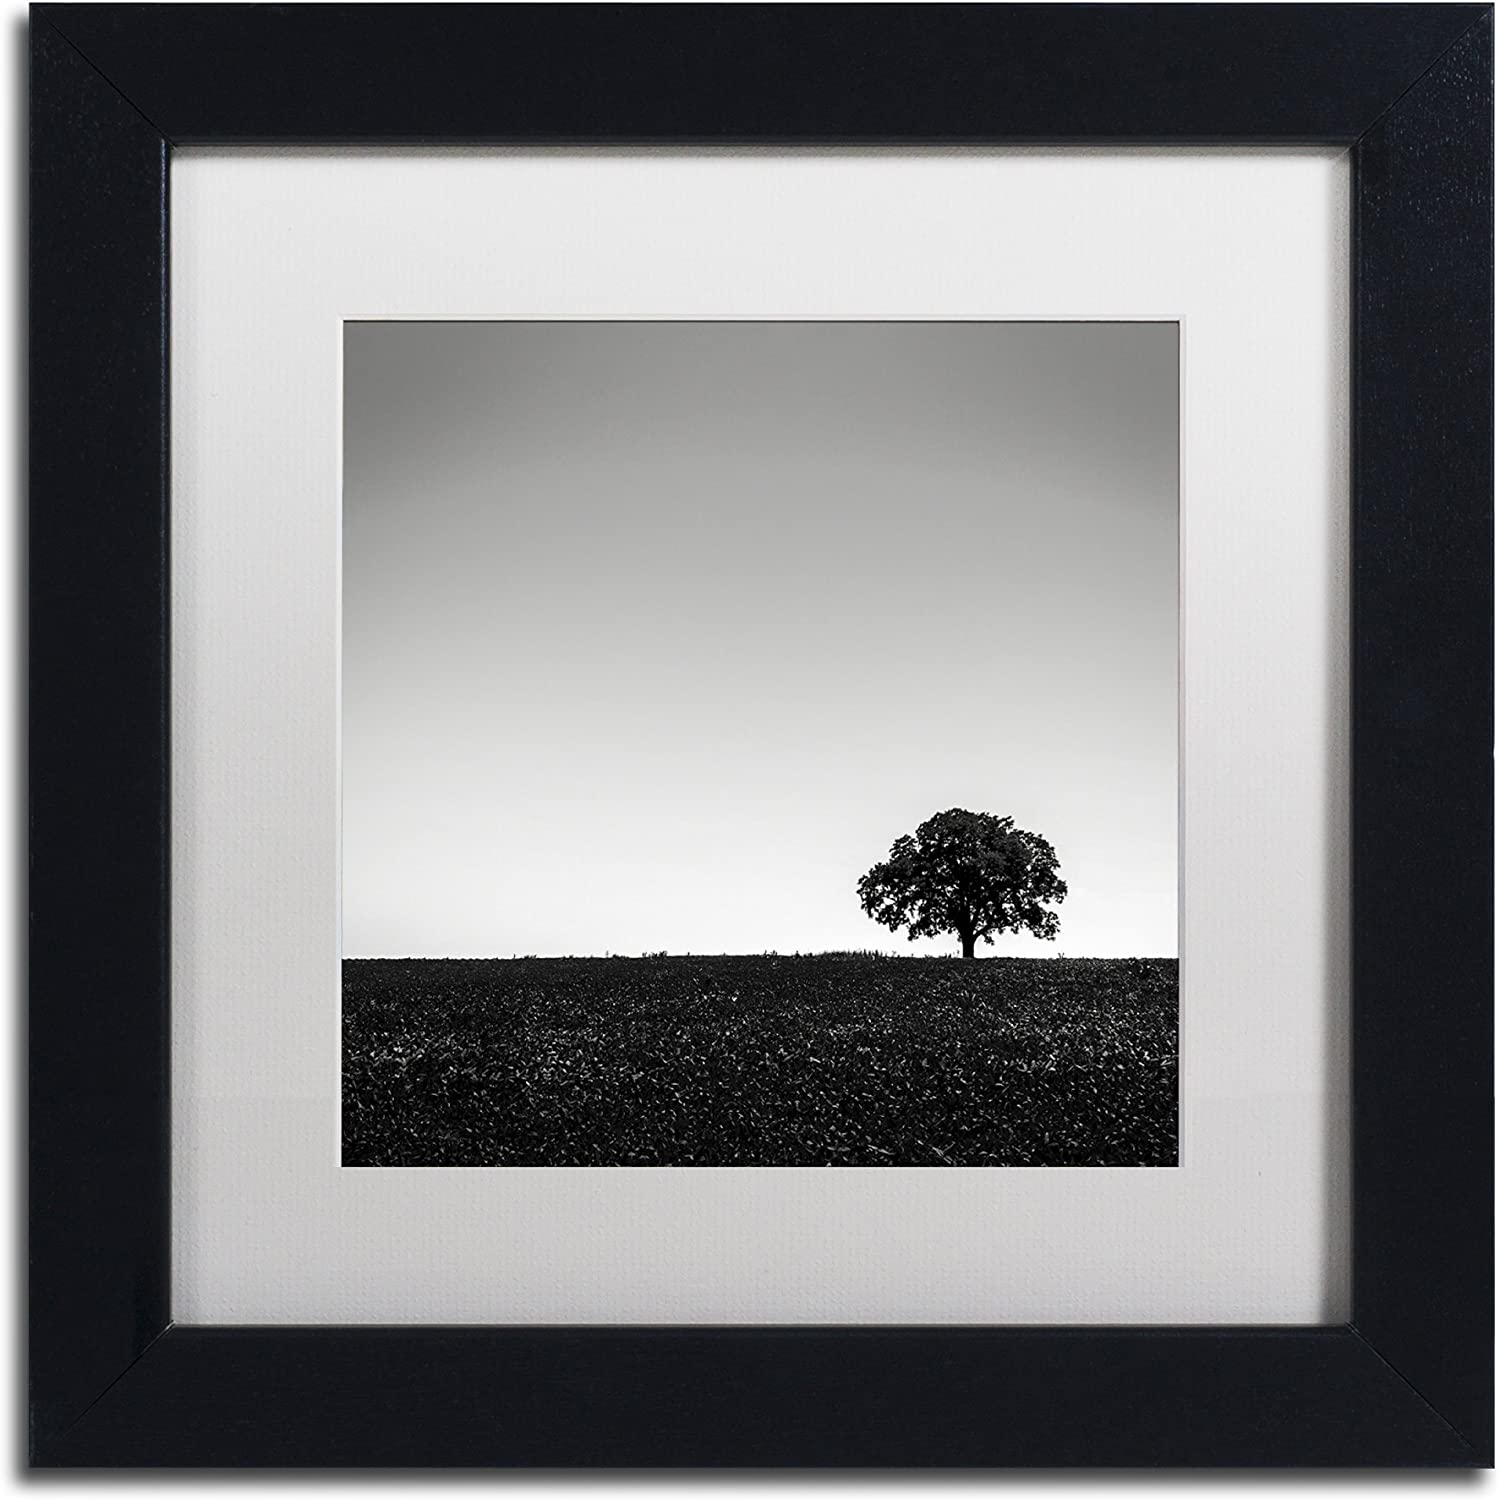 Trademark Fine Art One Tree Hill by Dave MacVicar Frame, 11 by 11Inch, White Matte